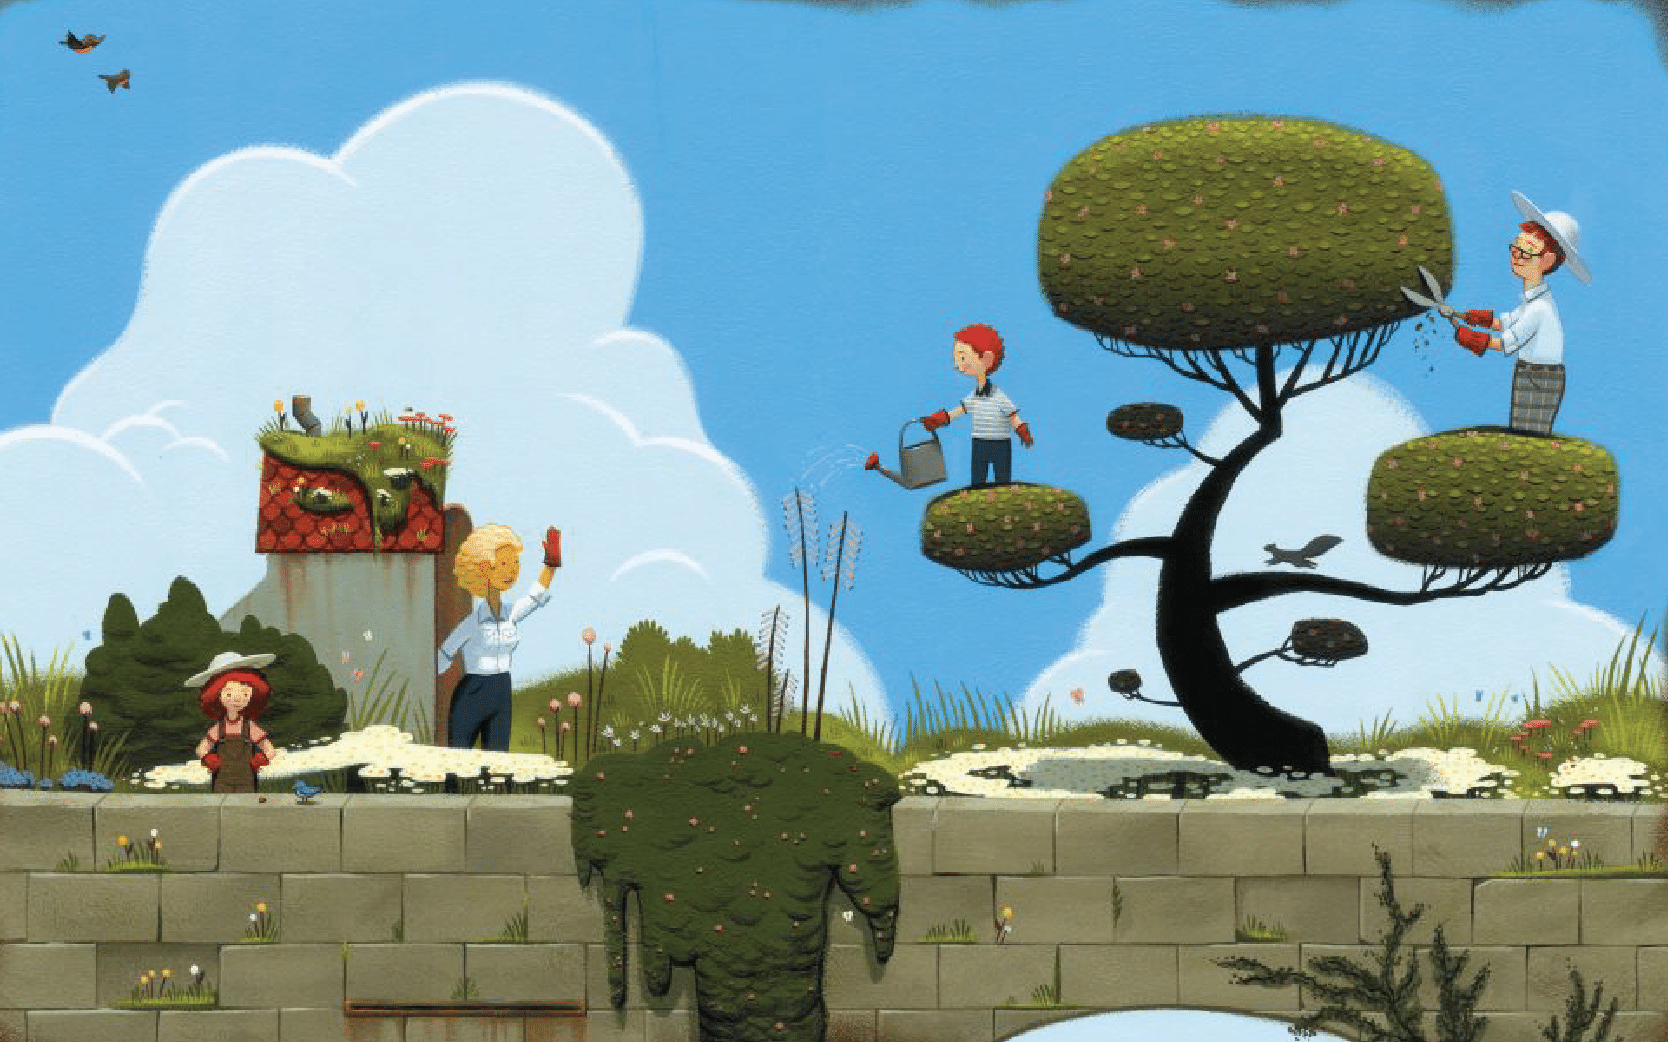 Illustration from the book The Curious Garden